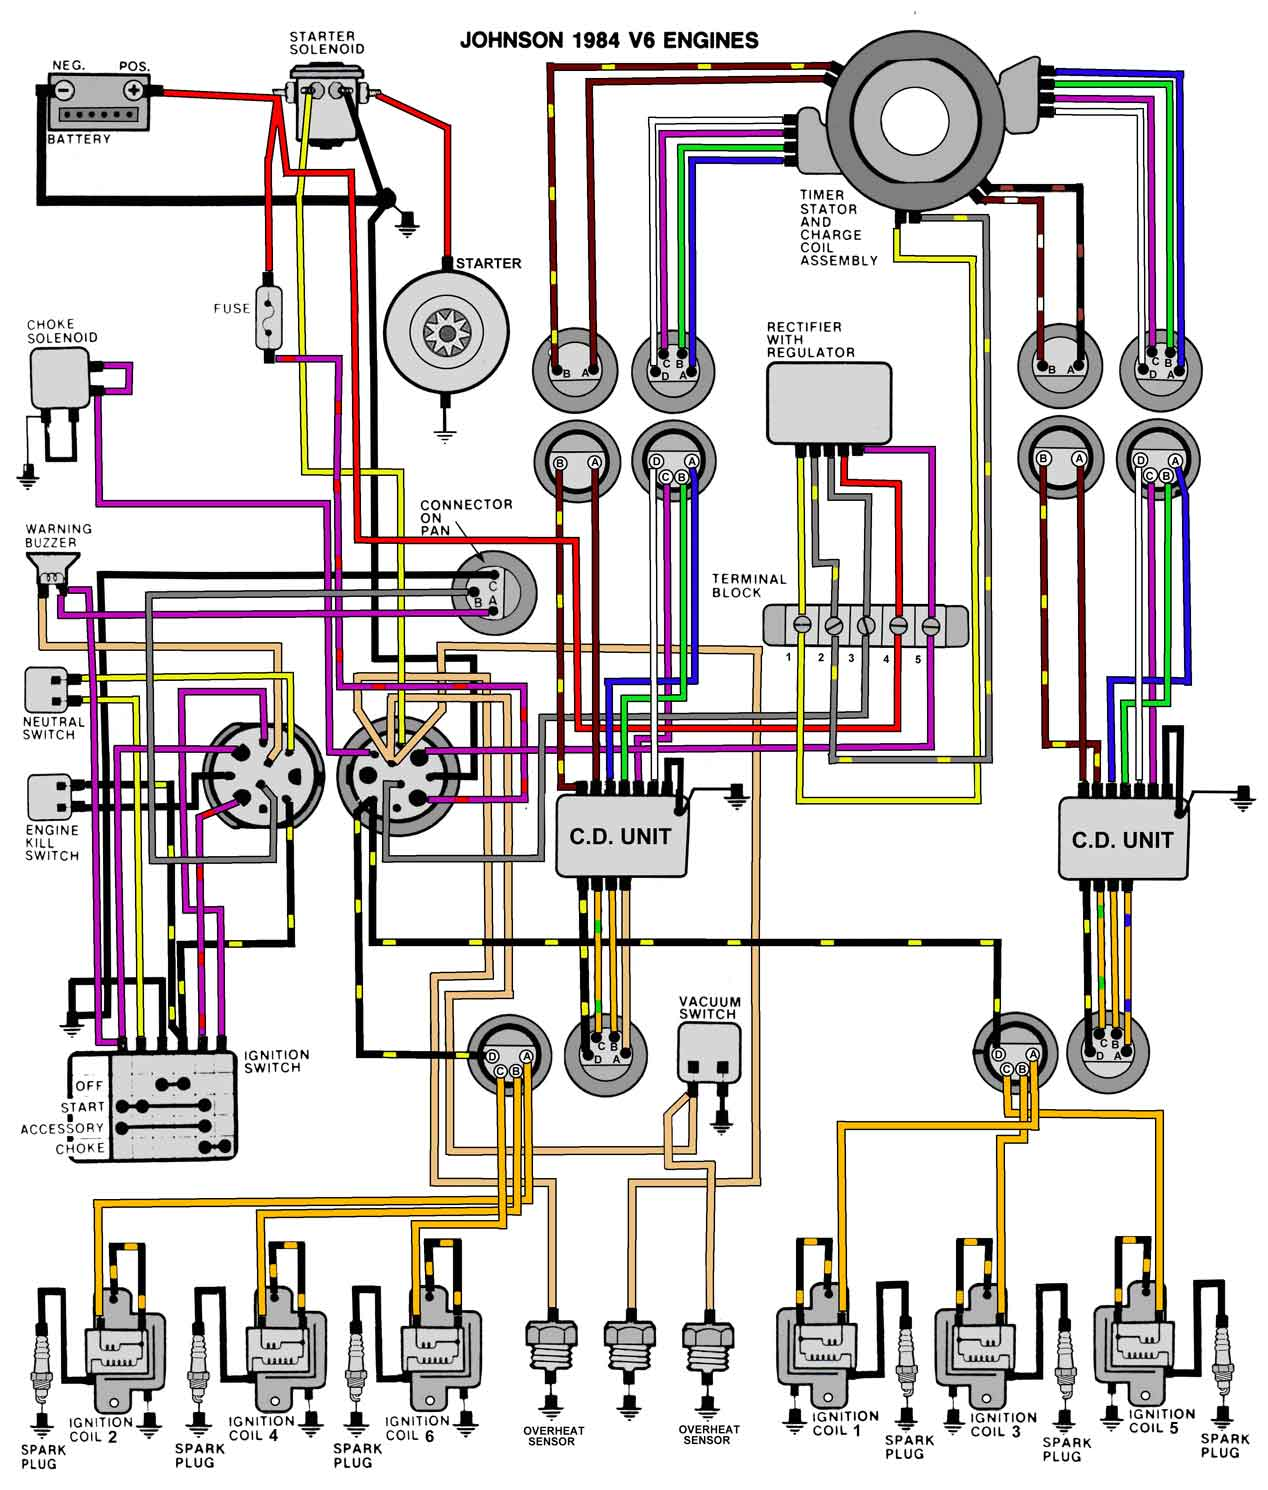 ea8 150 hp mercury outboard wiring diagrams | wiring resources  wiring resources